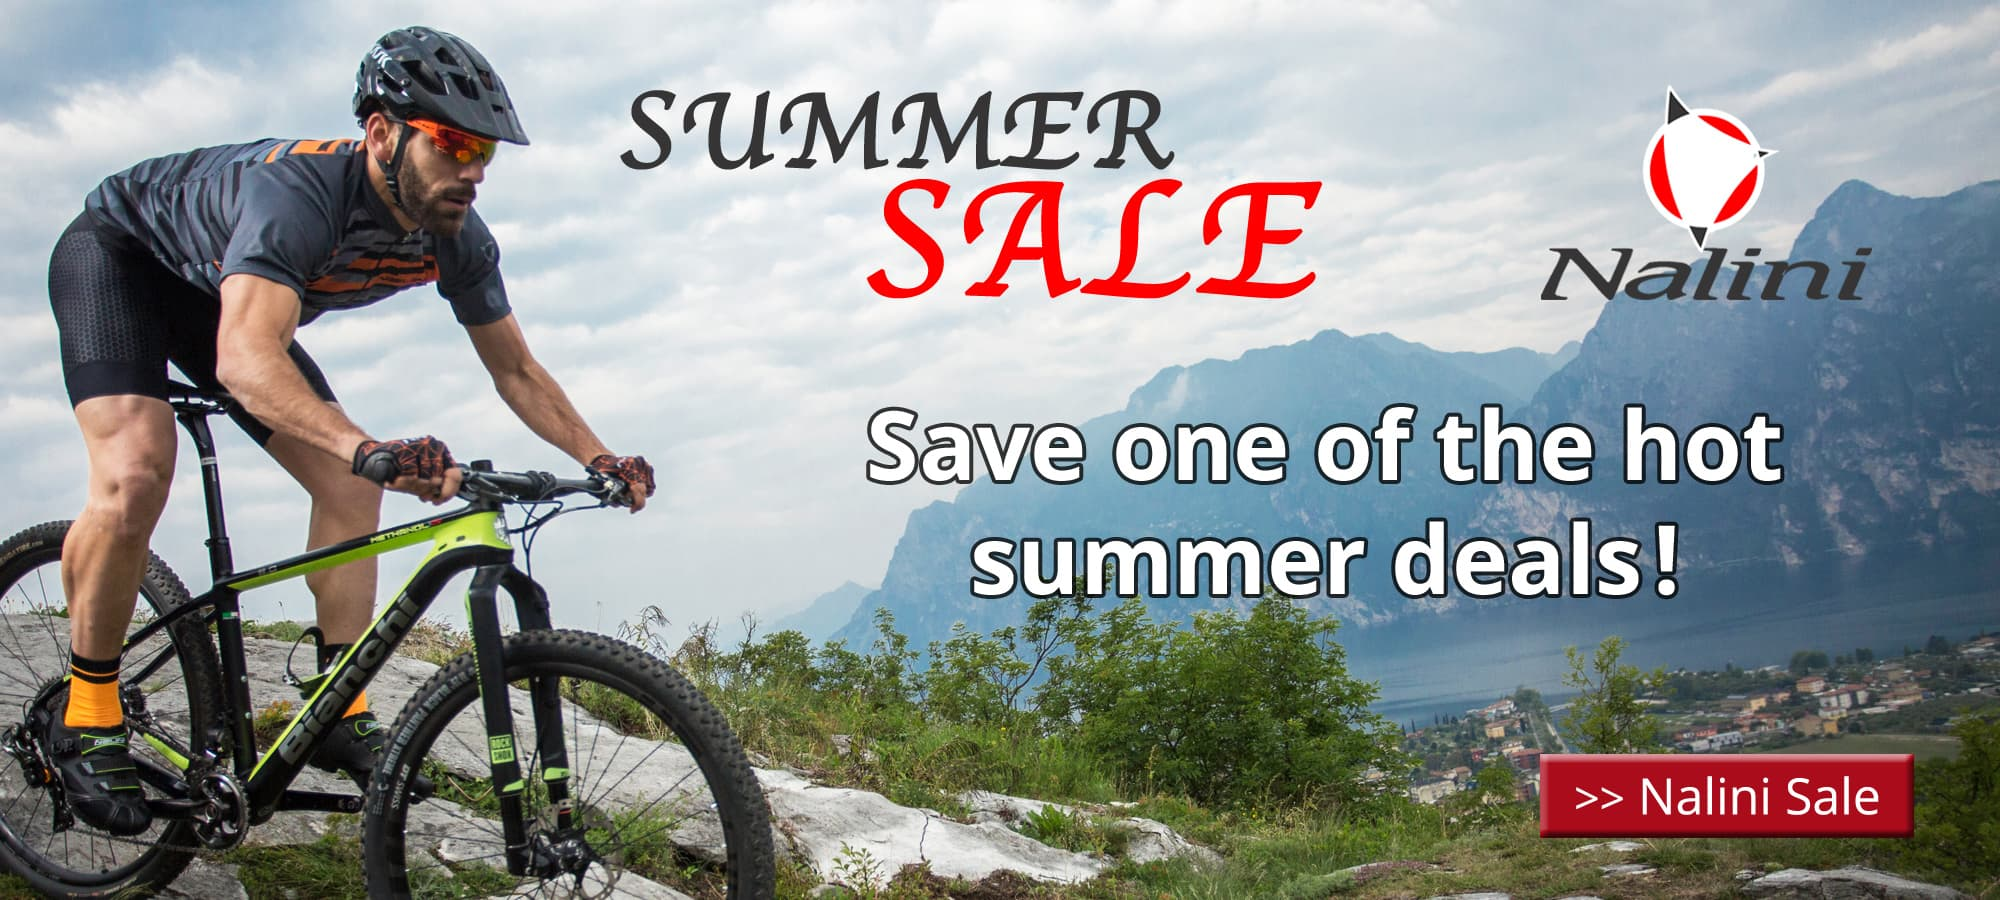 Nalini Summer Sale - save one of the hot summer deals of the brand Nalini